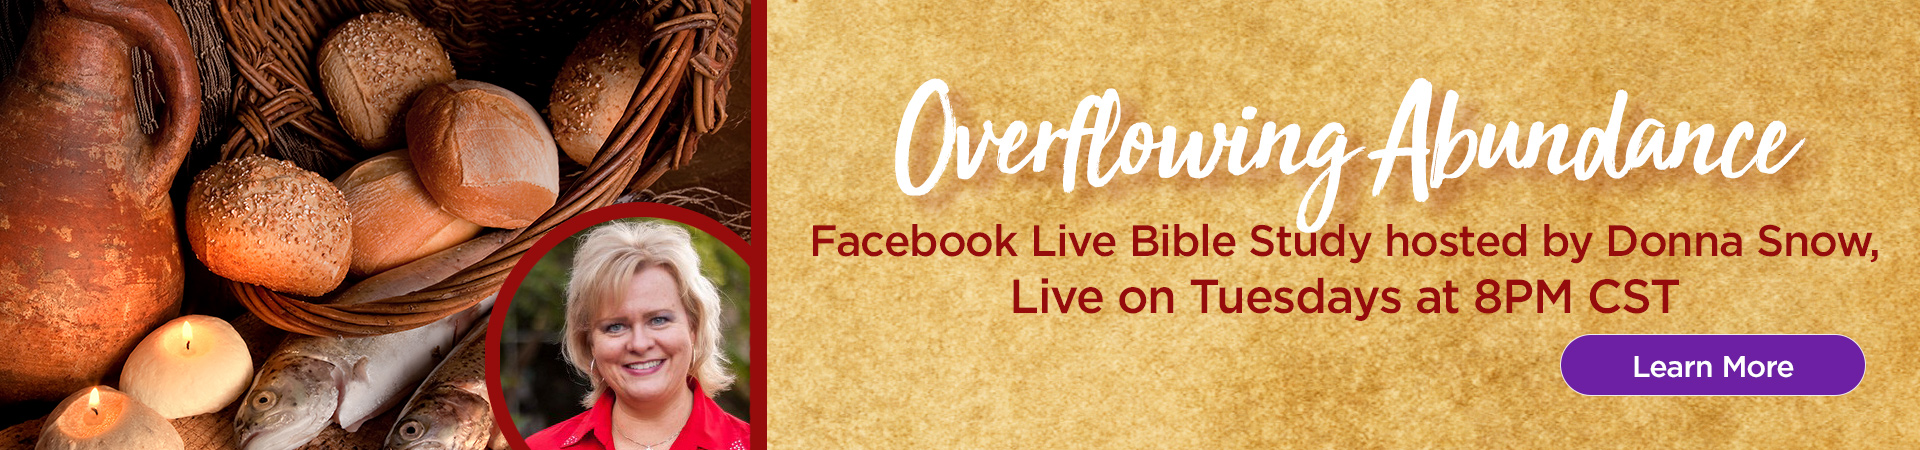 Overflowing Abundance Facebook Live Bible Study Live every Tuesday at 8PM CST. Learn More!